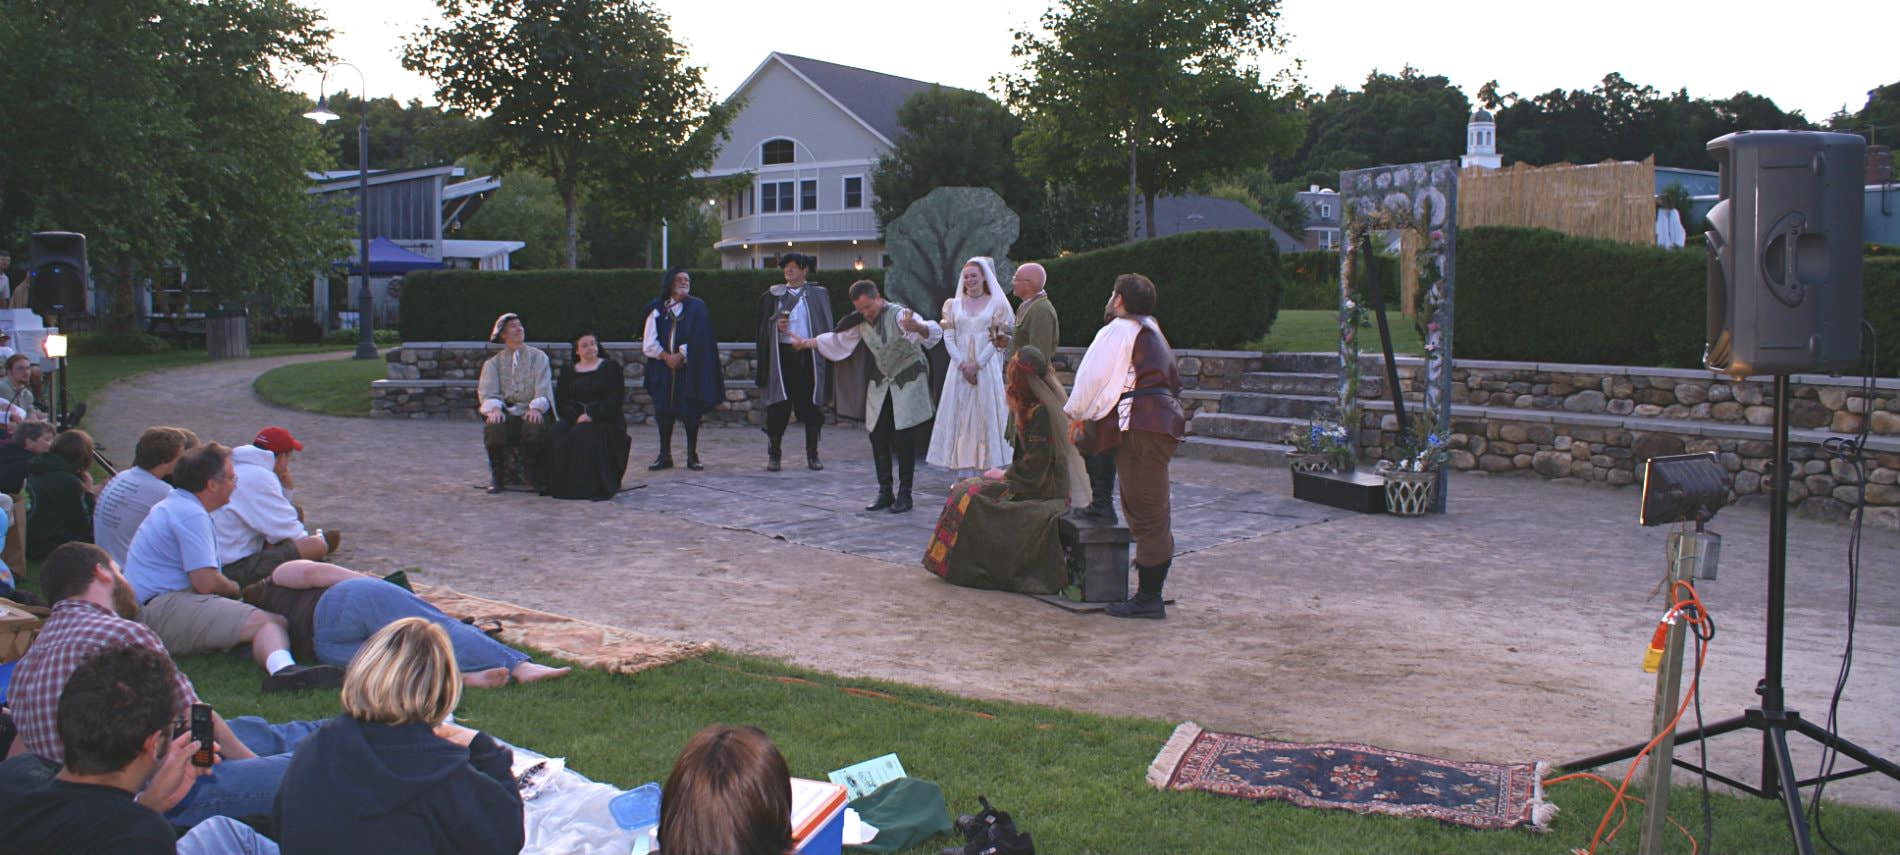 Costumed entertainers on a large patio performing for an audience